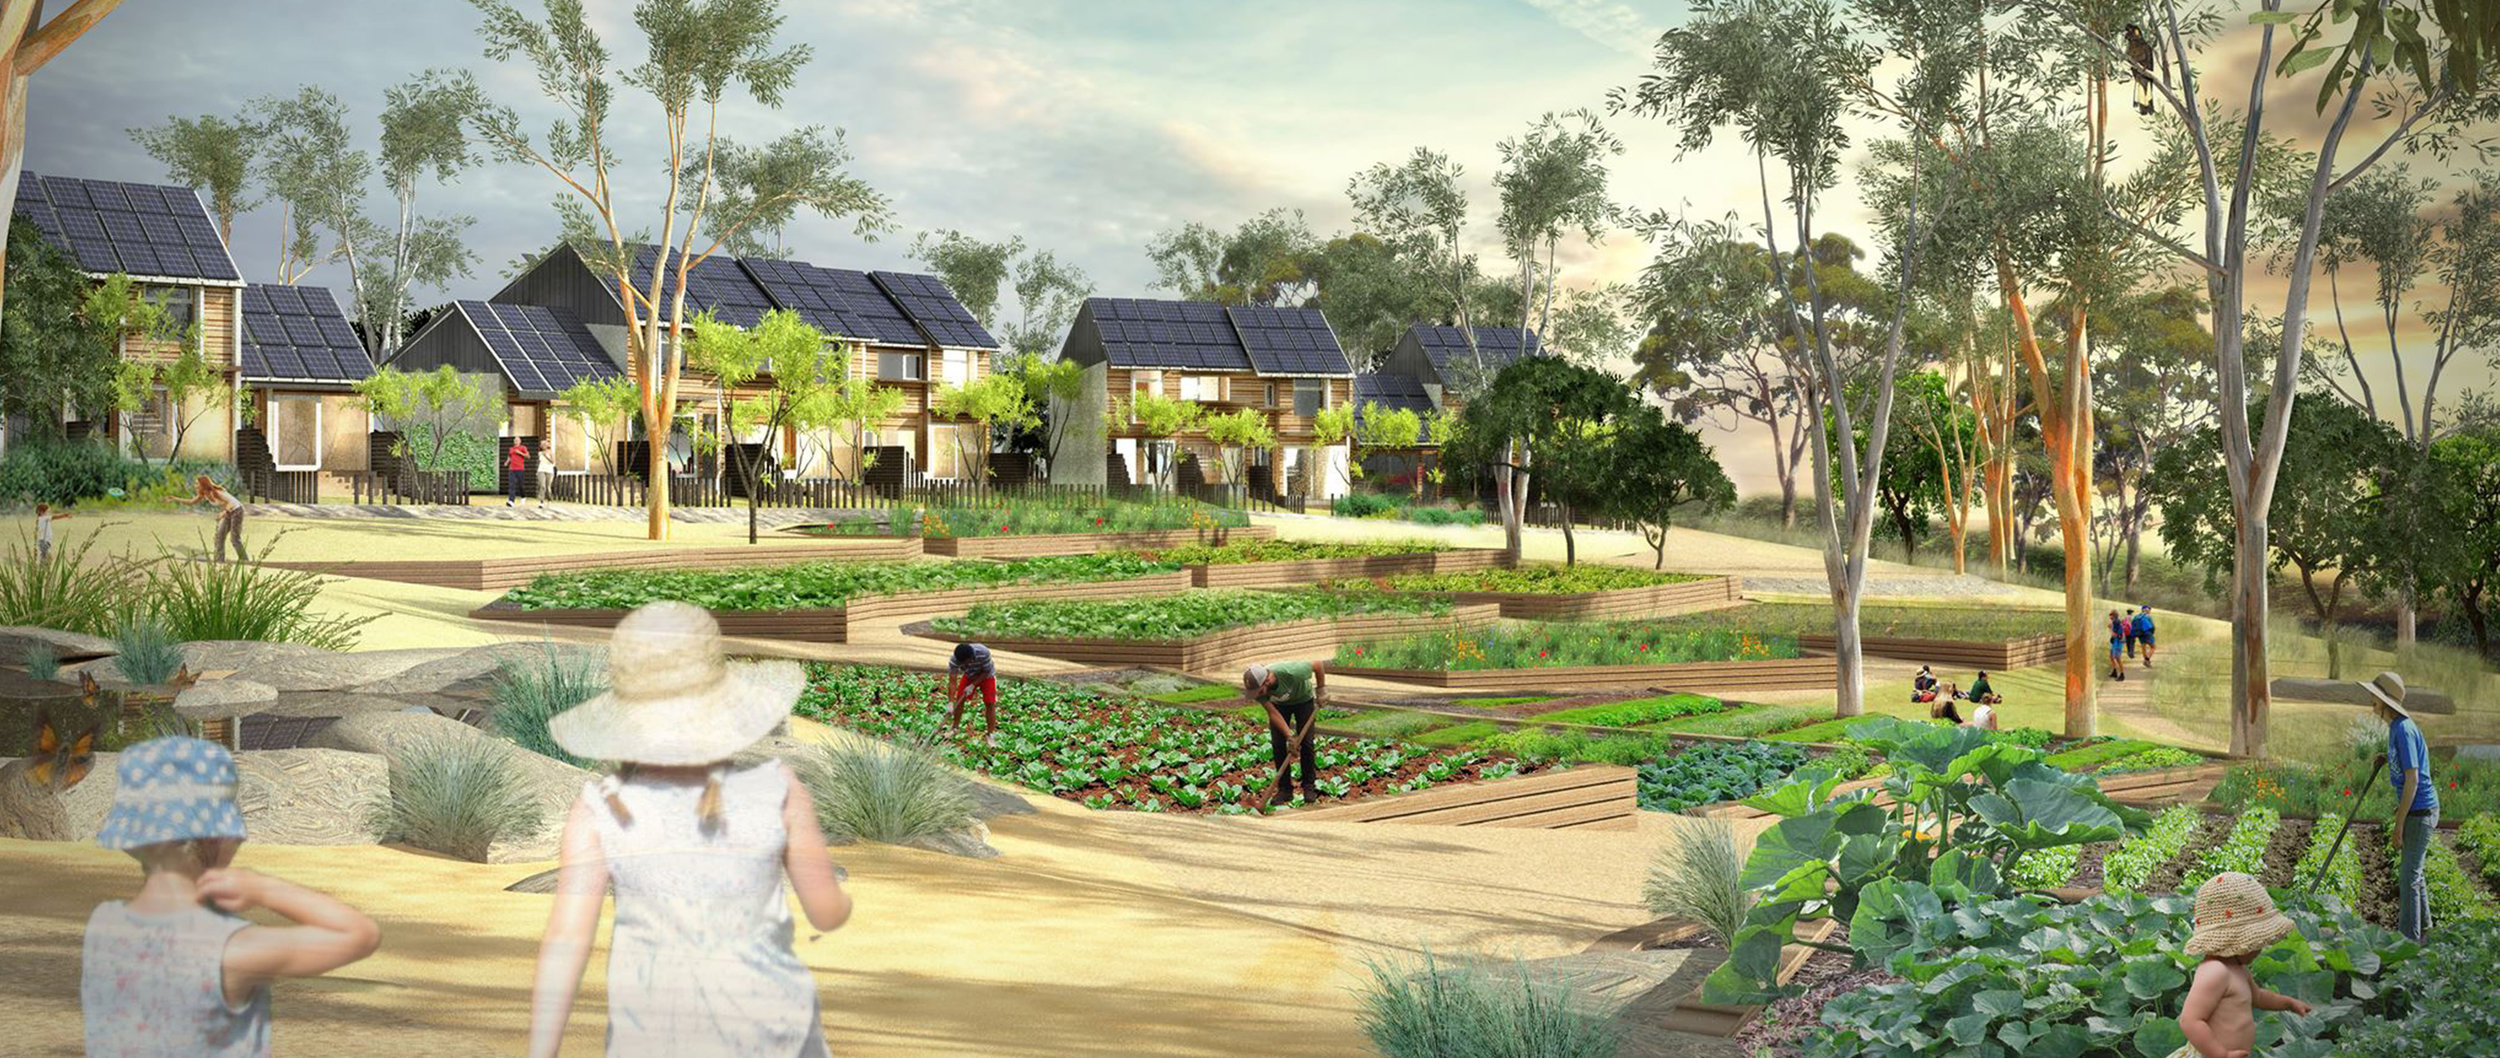 The Paddock Eco Village. A new standard for sustainable living.